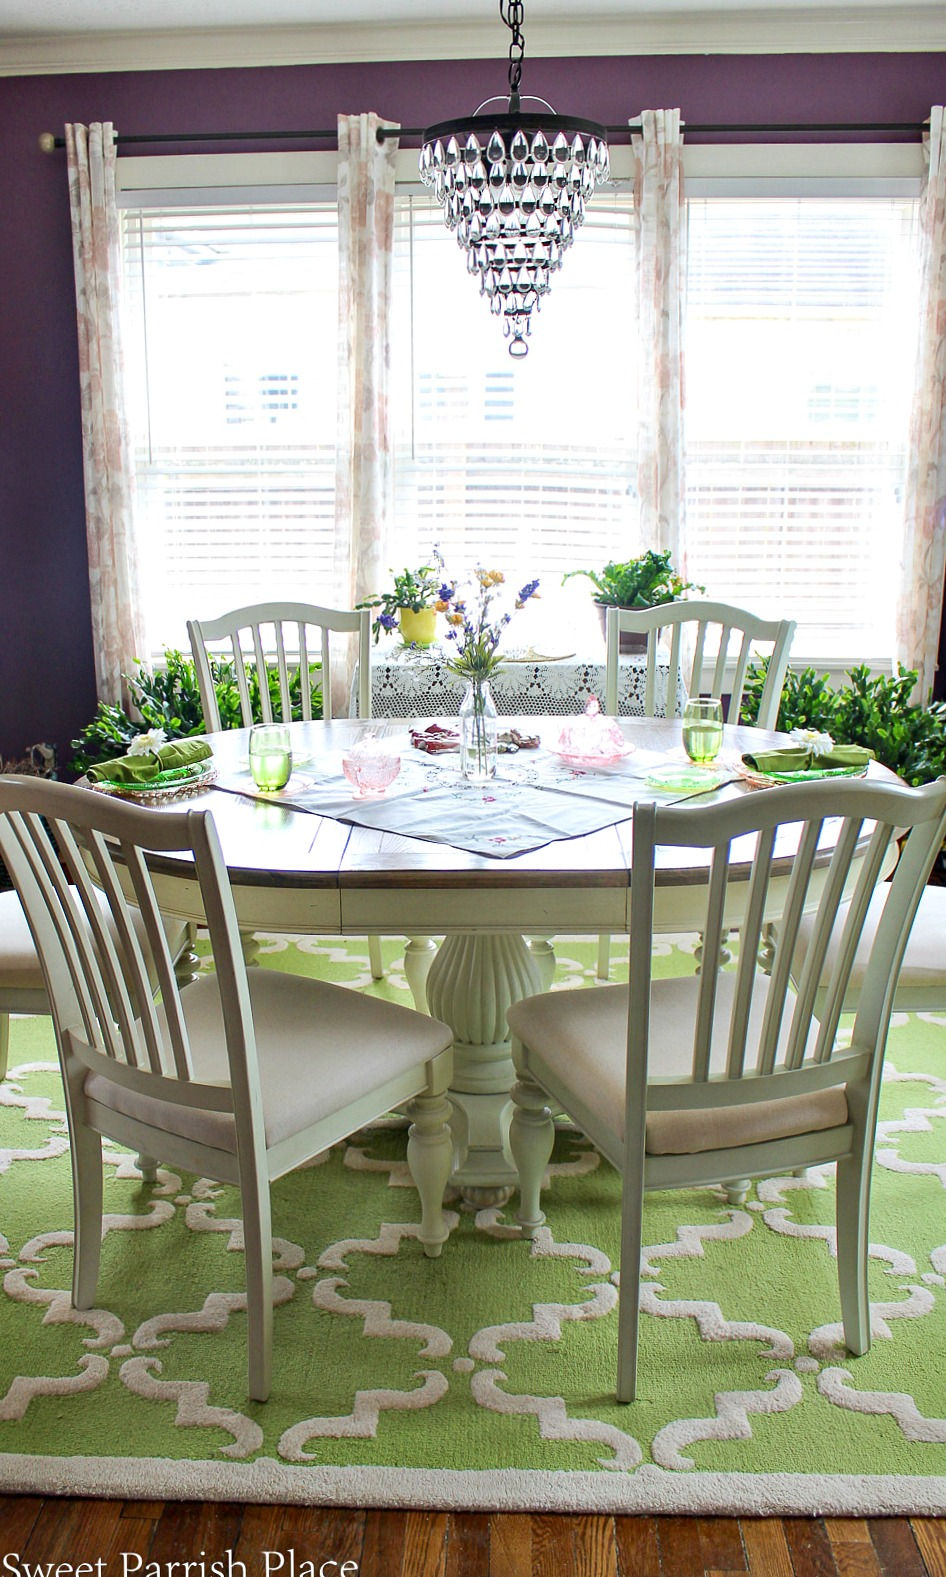 97 year old home tour- purple and green dining room